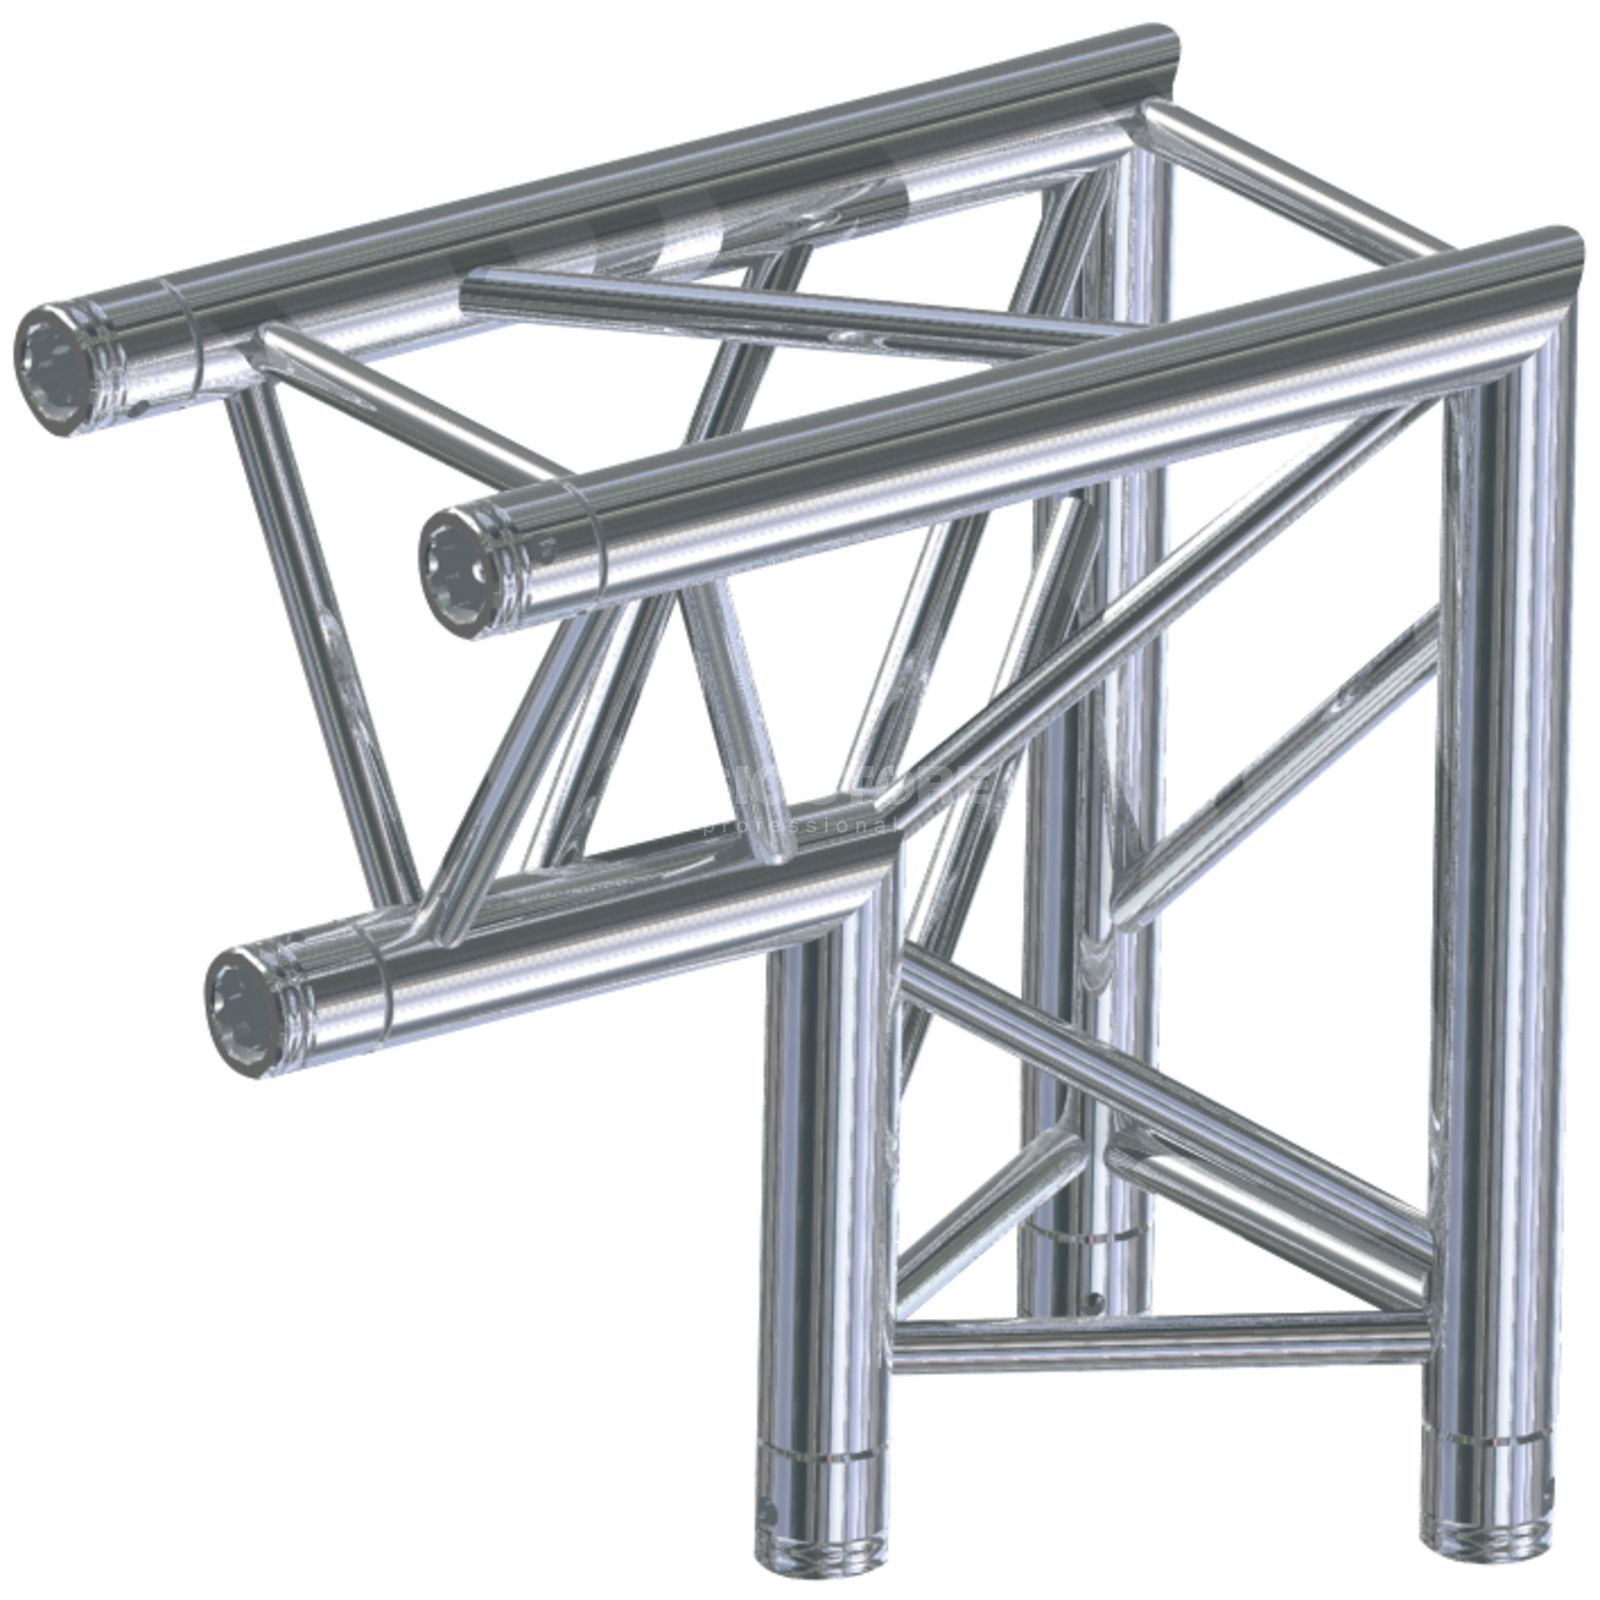 Global Truss F33, D90 Corner, C25 3-Point Produktbillede